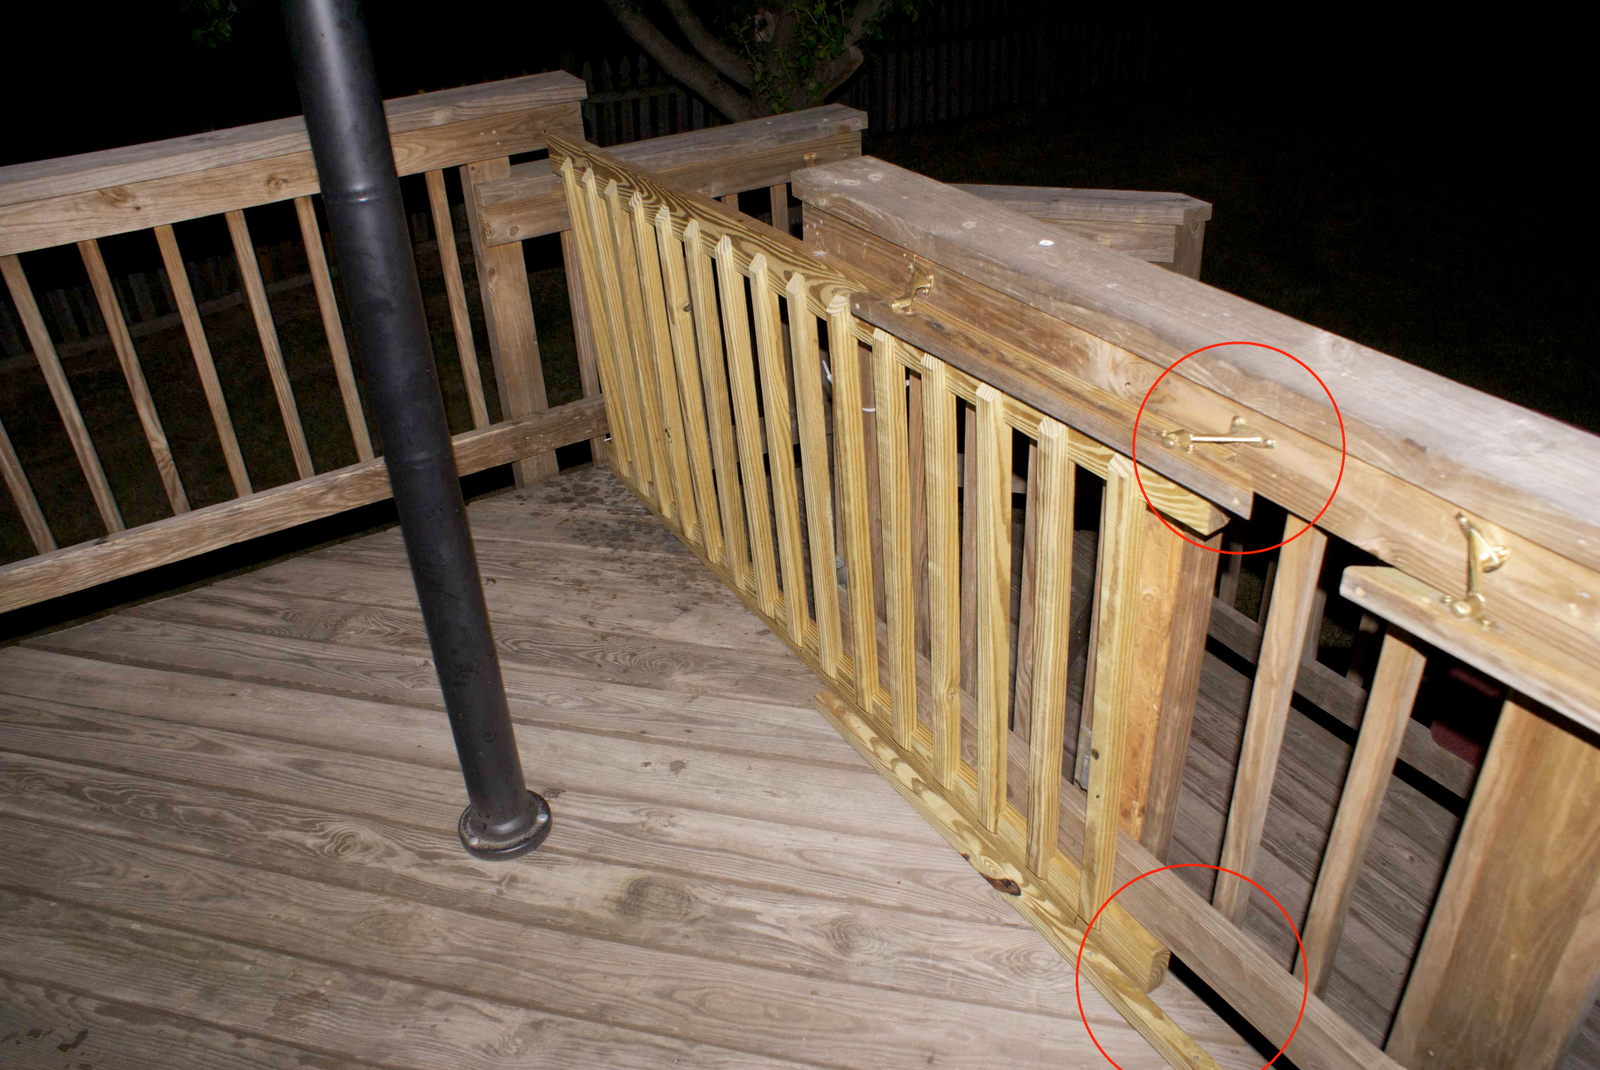 13 Diy Dog Gate Ideas: The Deck Gate Itself Is A Pre Fab Deck Railing